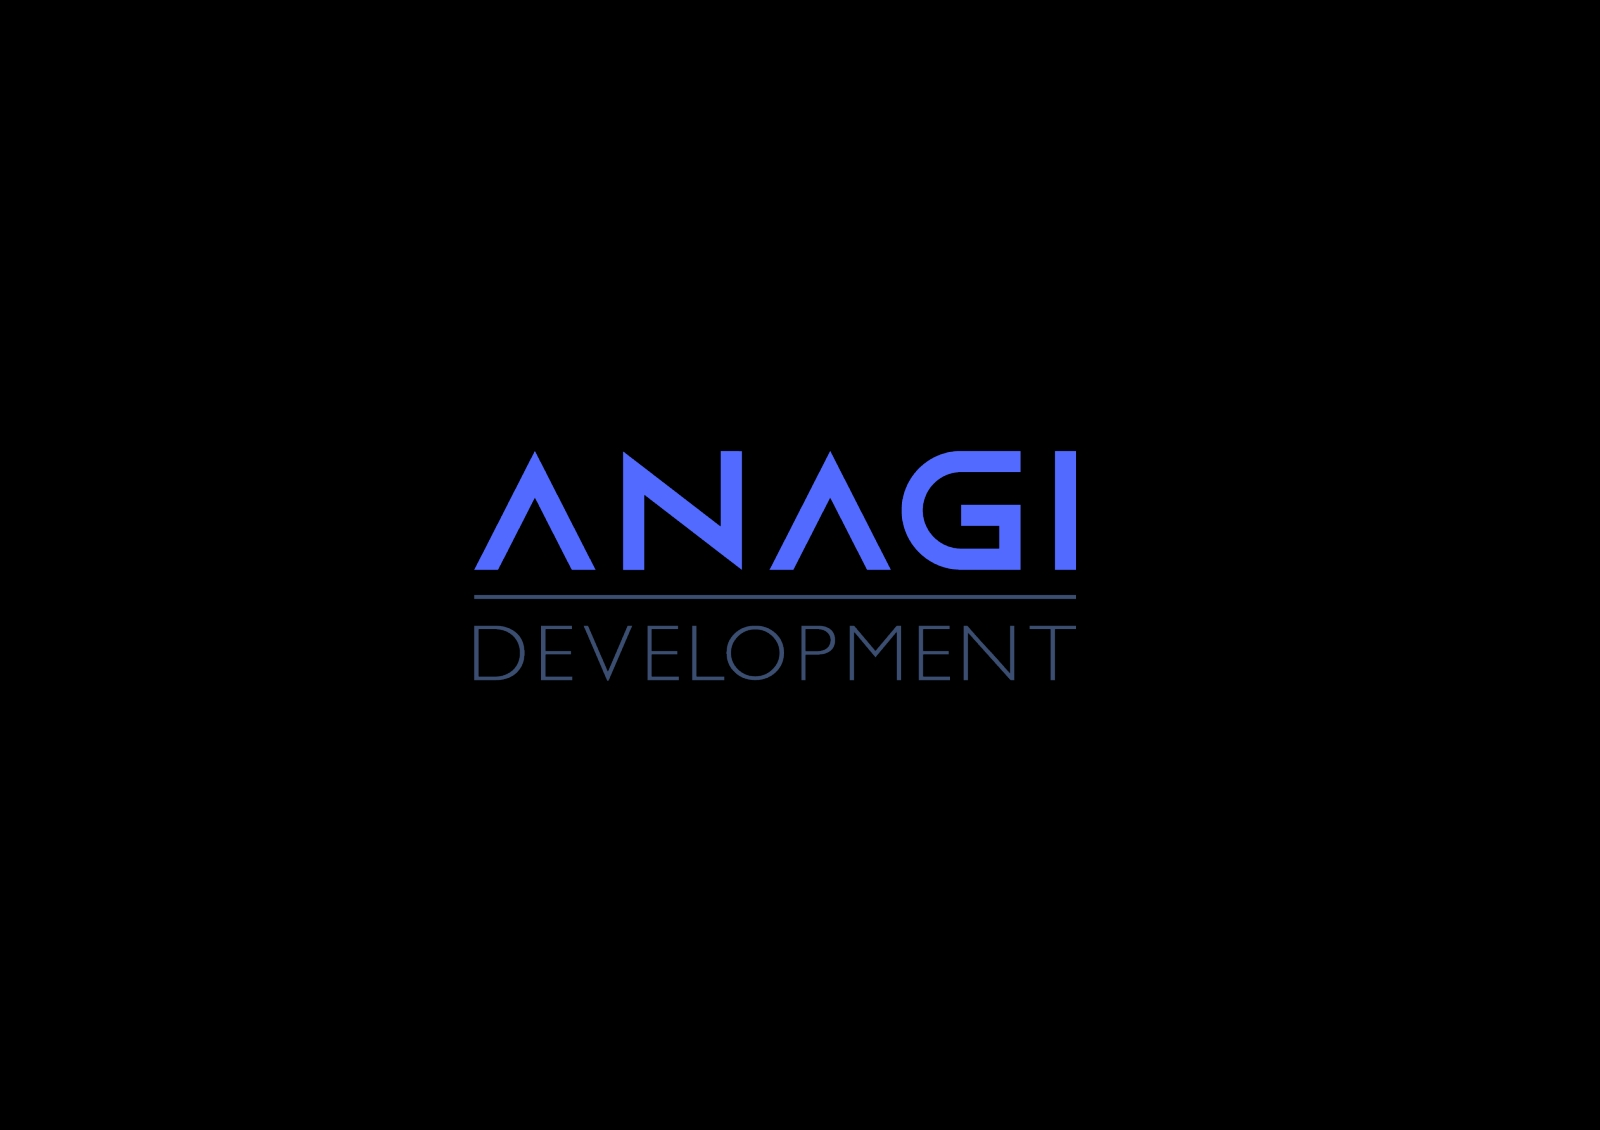 Anagi Development